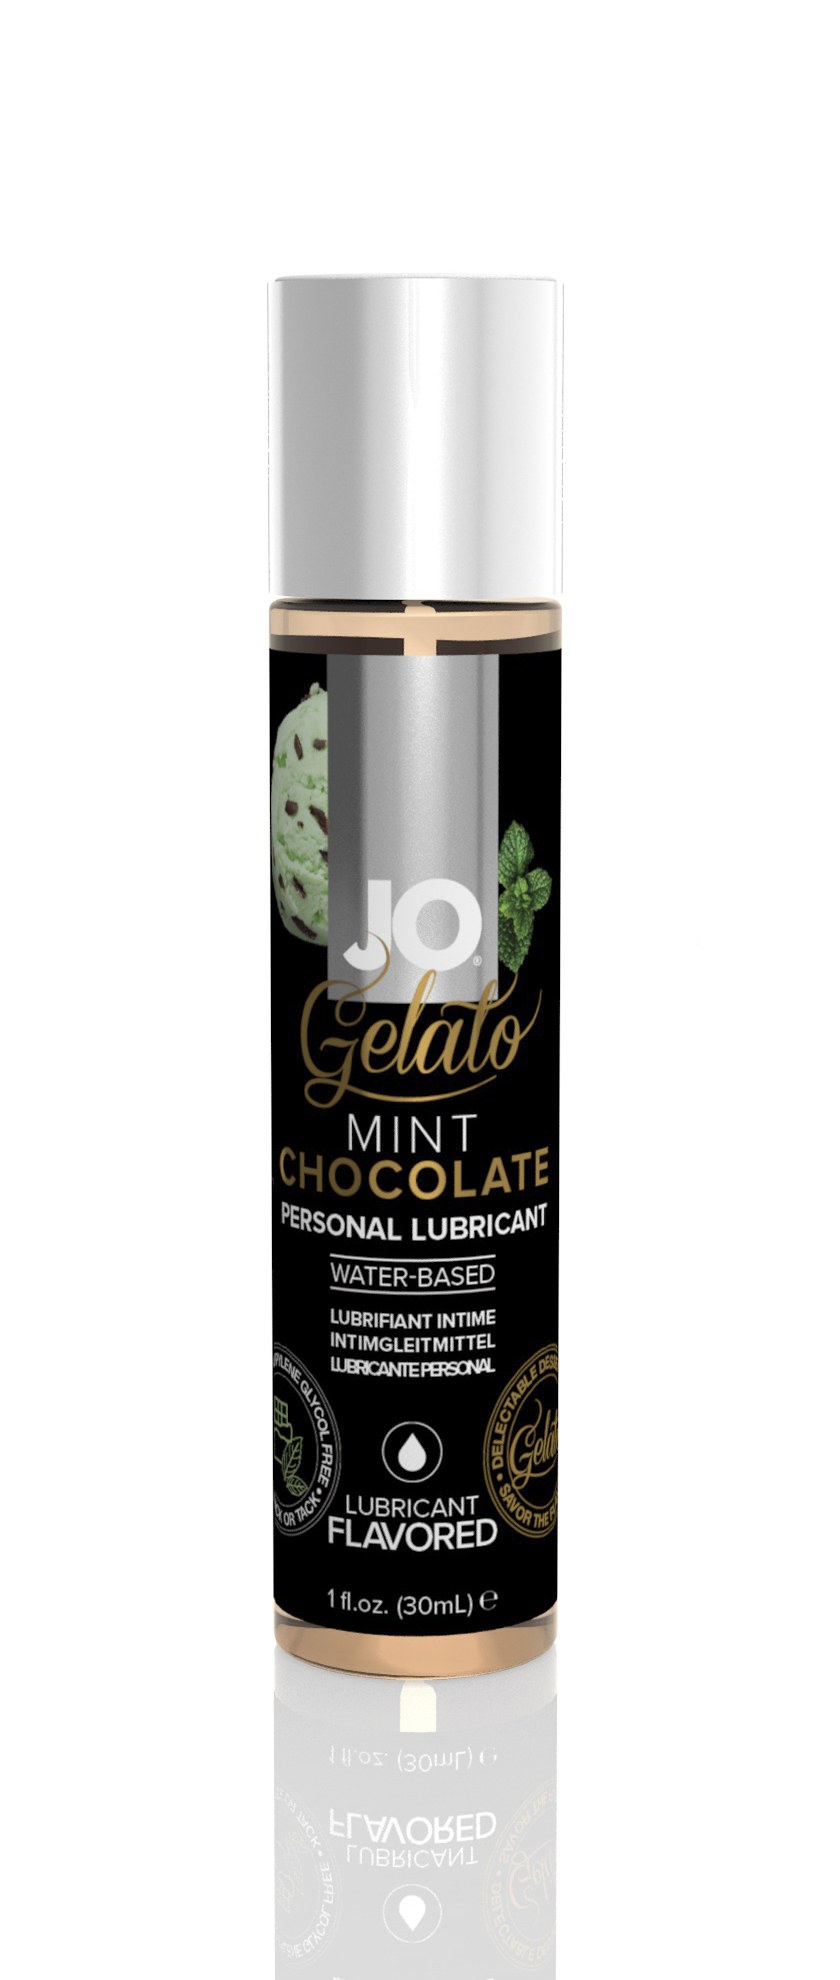 41022 - JO GELATO - MINT CHOCOLATE - LUBRICANT (WATER-BASED) 1 floz 30 mL.jpg